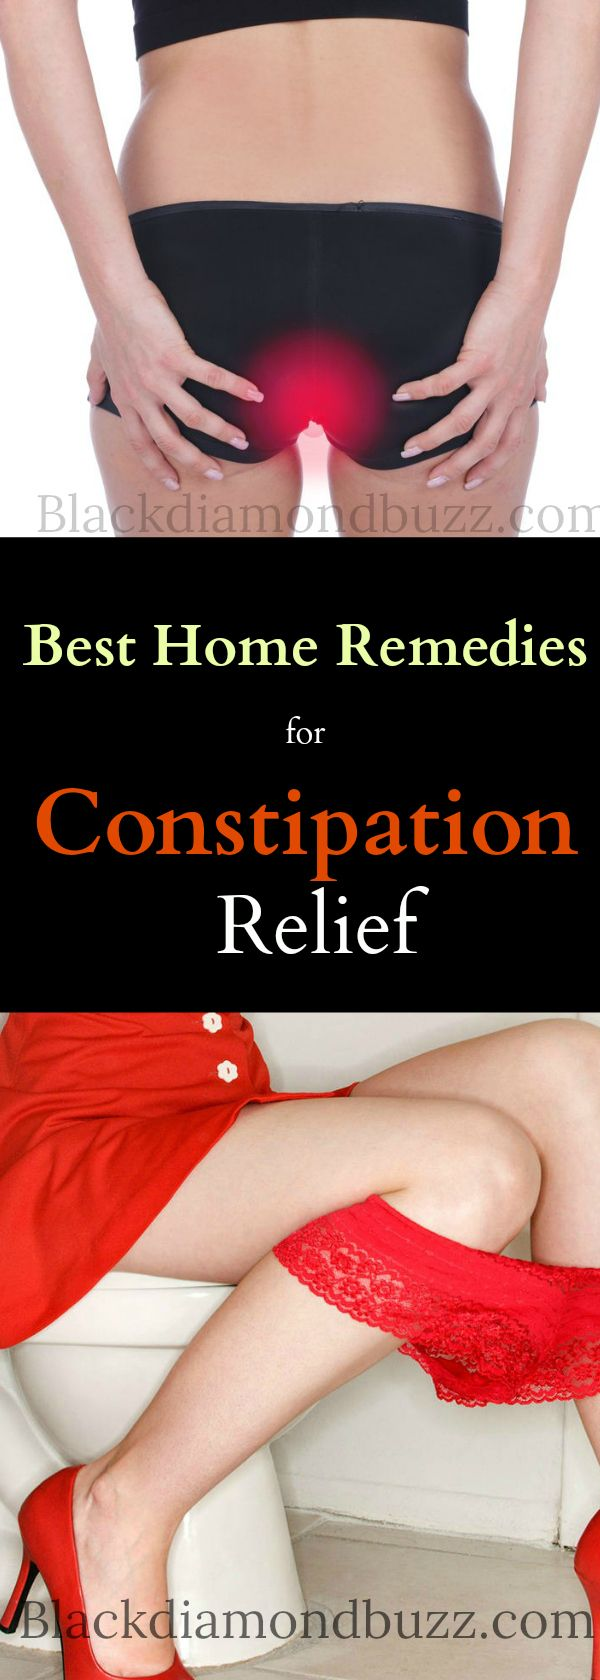 10 Home Remedies For Constipation That Works Fast